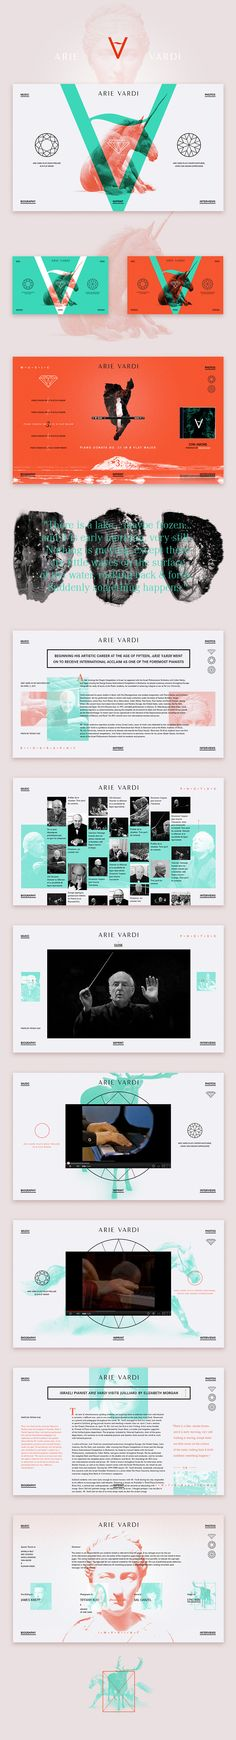 The website of Israeli pianist and conductor Arie Vardi, who is well-known for his sufficiently modern and original interpretation of classical music. by Sash firs more on http://themeforest.net/?ref=Vision7Studio Latest Modern Web Designs. http://webworksagency.com